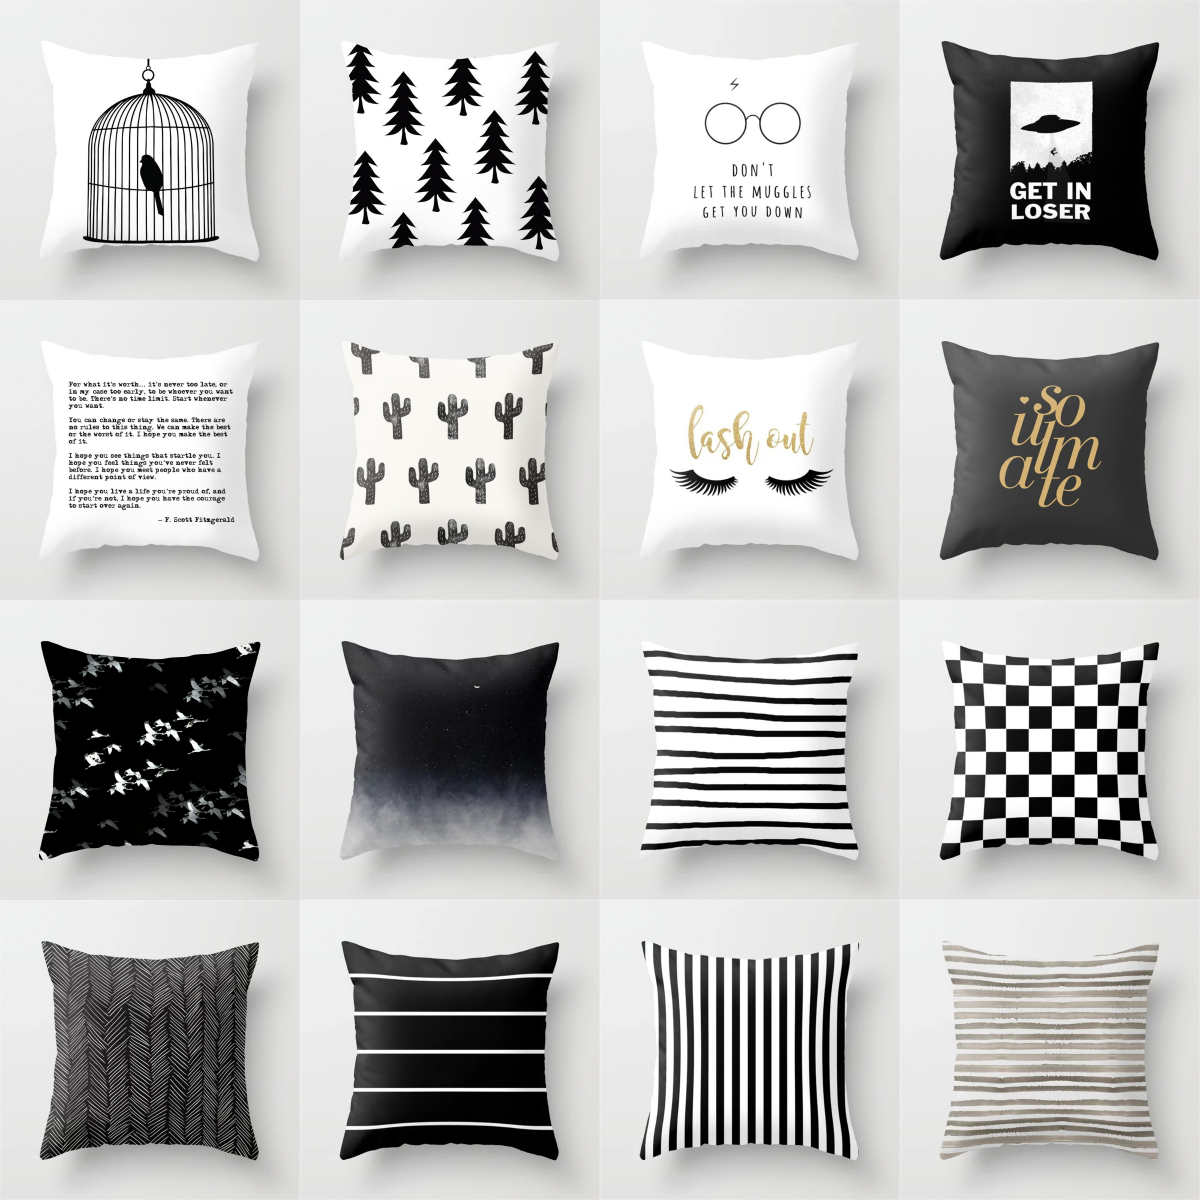 black and white cushion cover geometric polyester throw pillow covers decorative 45x45cm couch pillows fashion nordic pillowcase